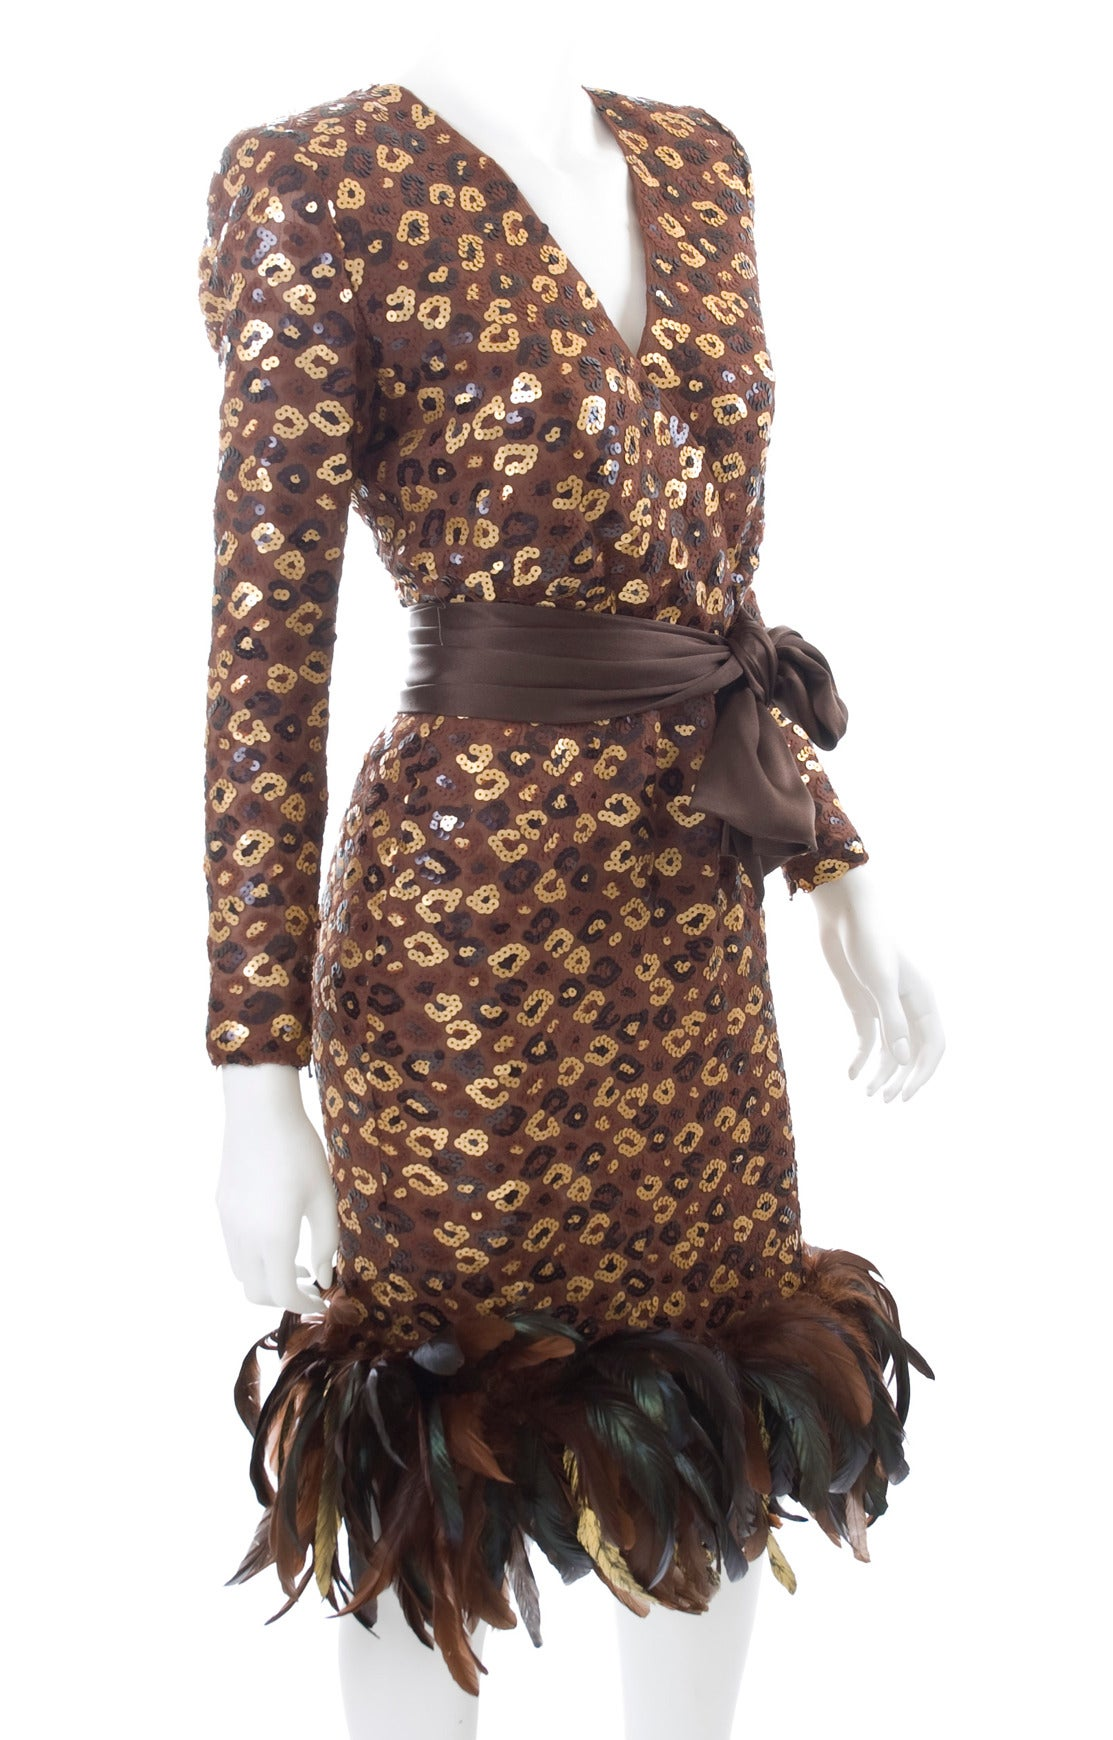 1986 Givenchy Dress with Sequins and Feathers 3